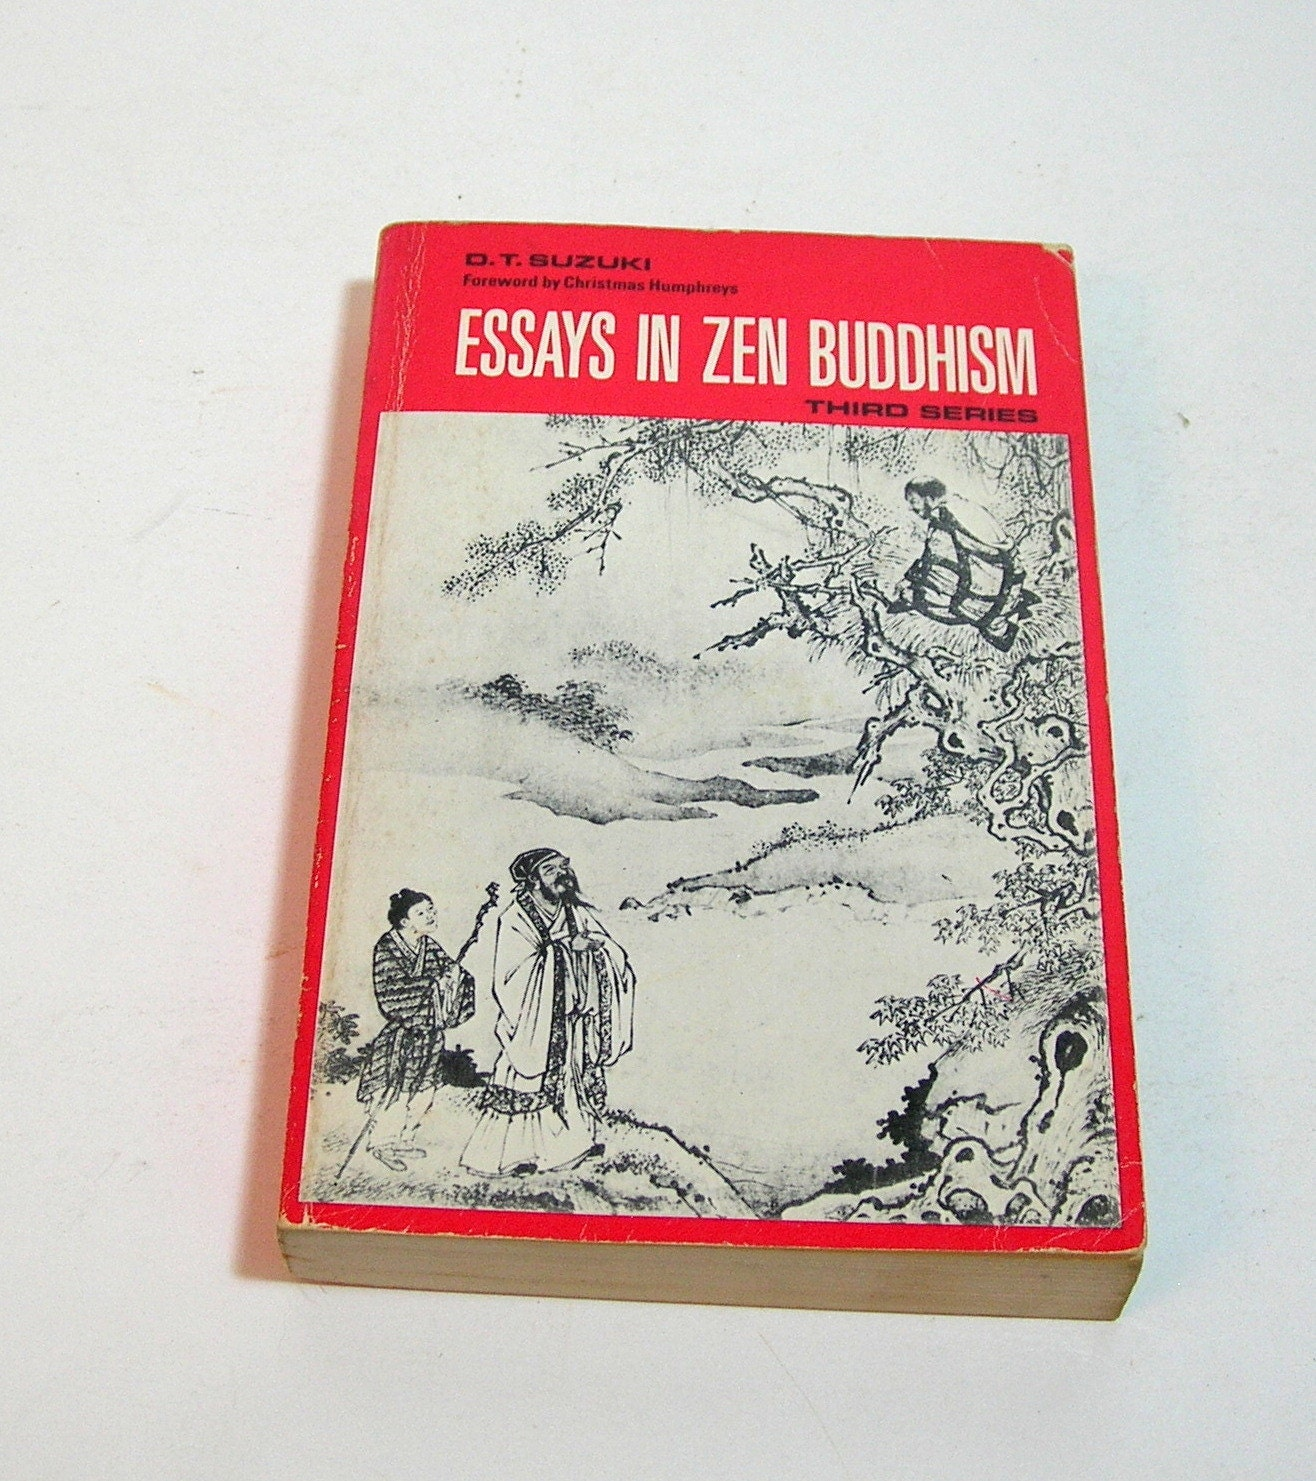 "suzuki essays in zen buddhism first series As one perceptive reviewer of suzuki's 1956 zen buddhism ""the sense of zen"" in essays in zen buddhism, first series los angeles review of books."